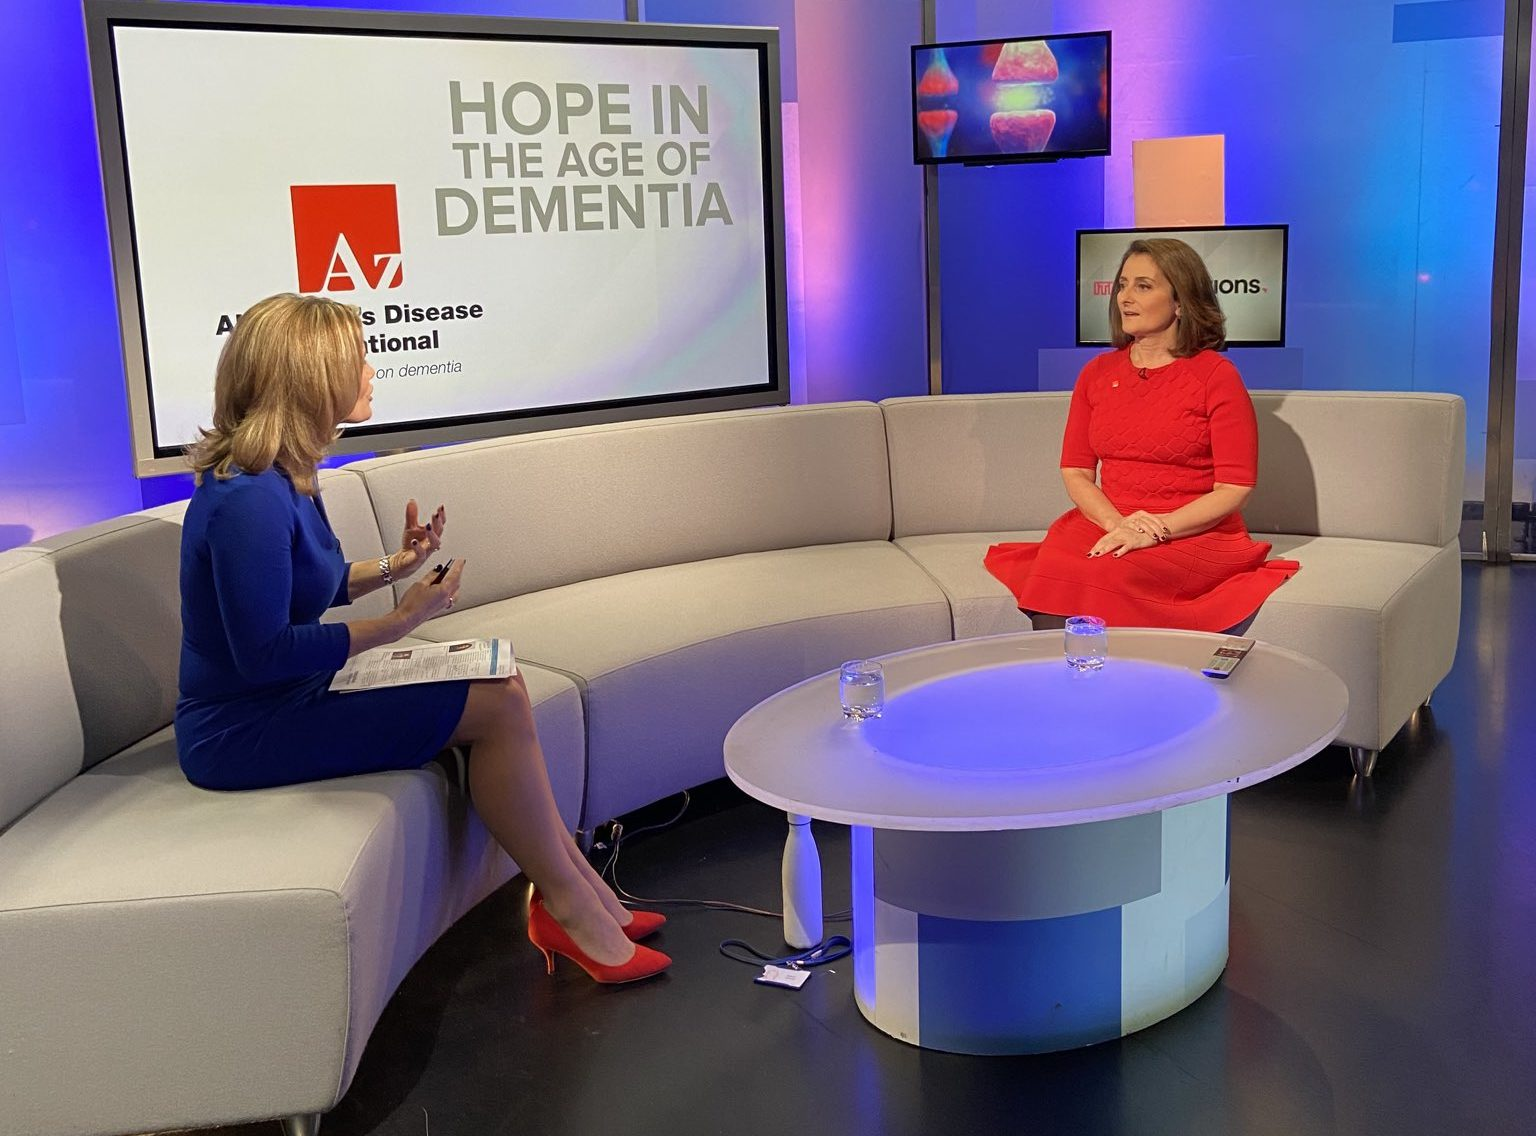 Hope in the Age of Dementia film